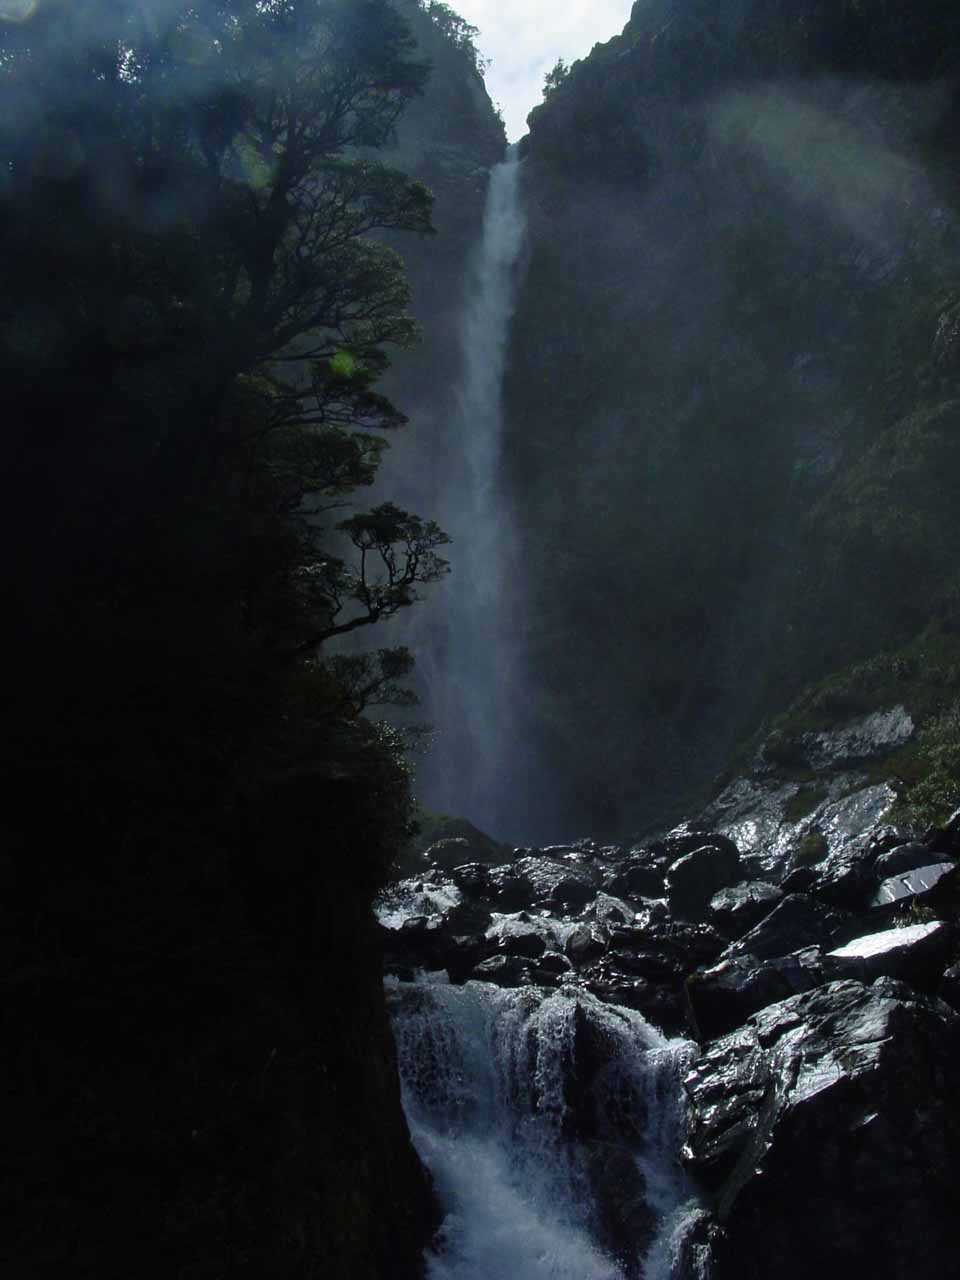 Devils Punchbowl Falls seen from the lookout at its base